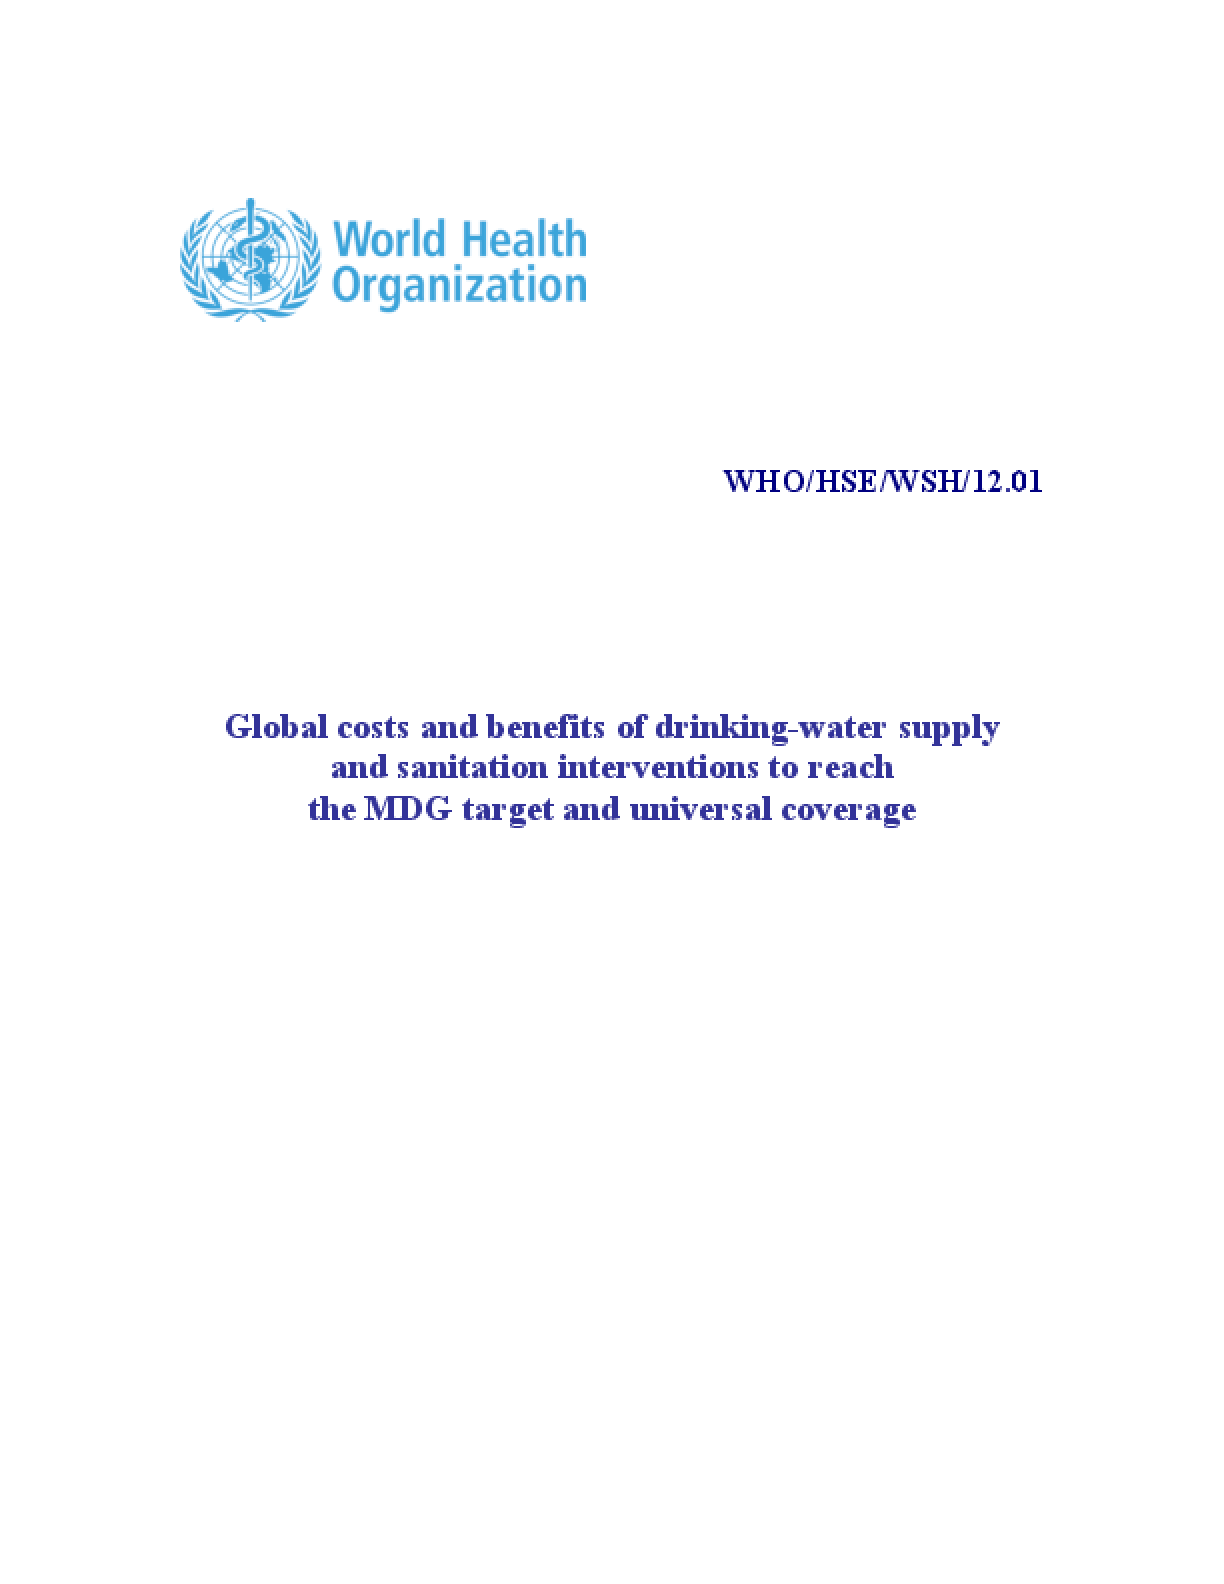 Global Costs and Benefits of Drinking-water Supply and Sanitation Interventions to Reach the MDG Target and Universal Coverage